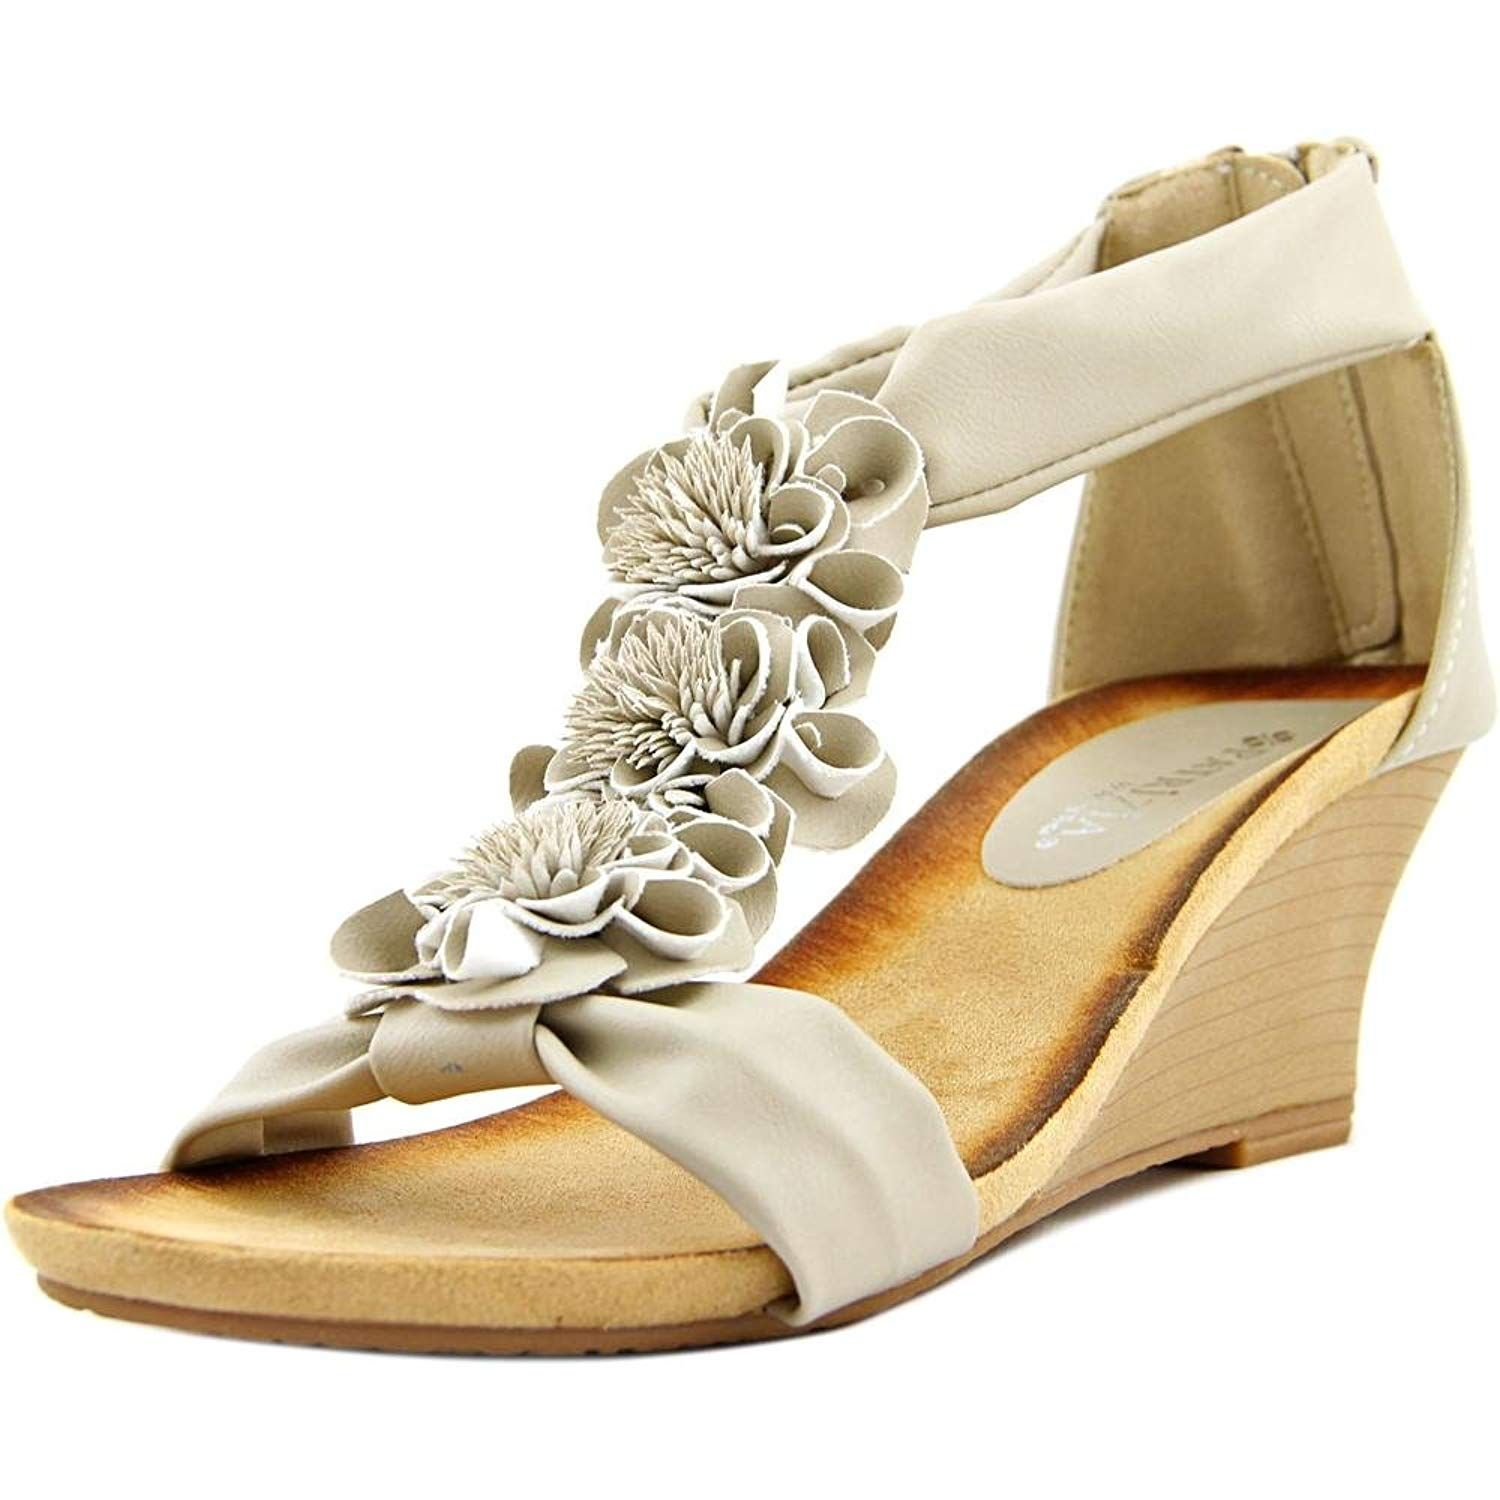 d483e30a66b4 Patrizia By Spring Step Isabella Women US 9 Nude Wedge Sandal EU 40. The  Patrizia By Spring Step Isabella Sandals feature a Synthetic upper with a.